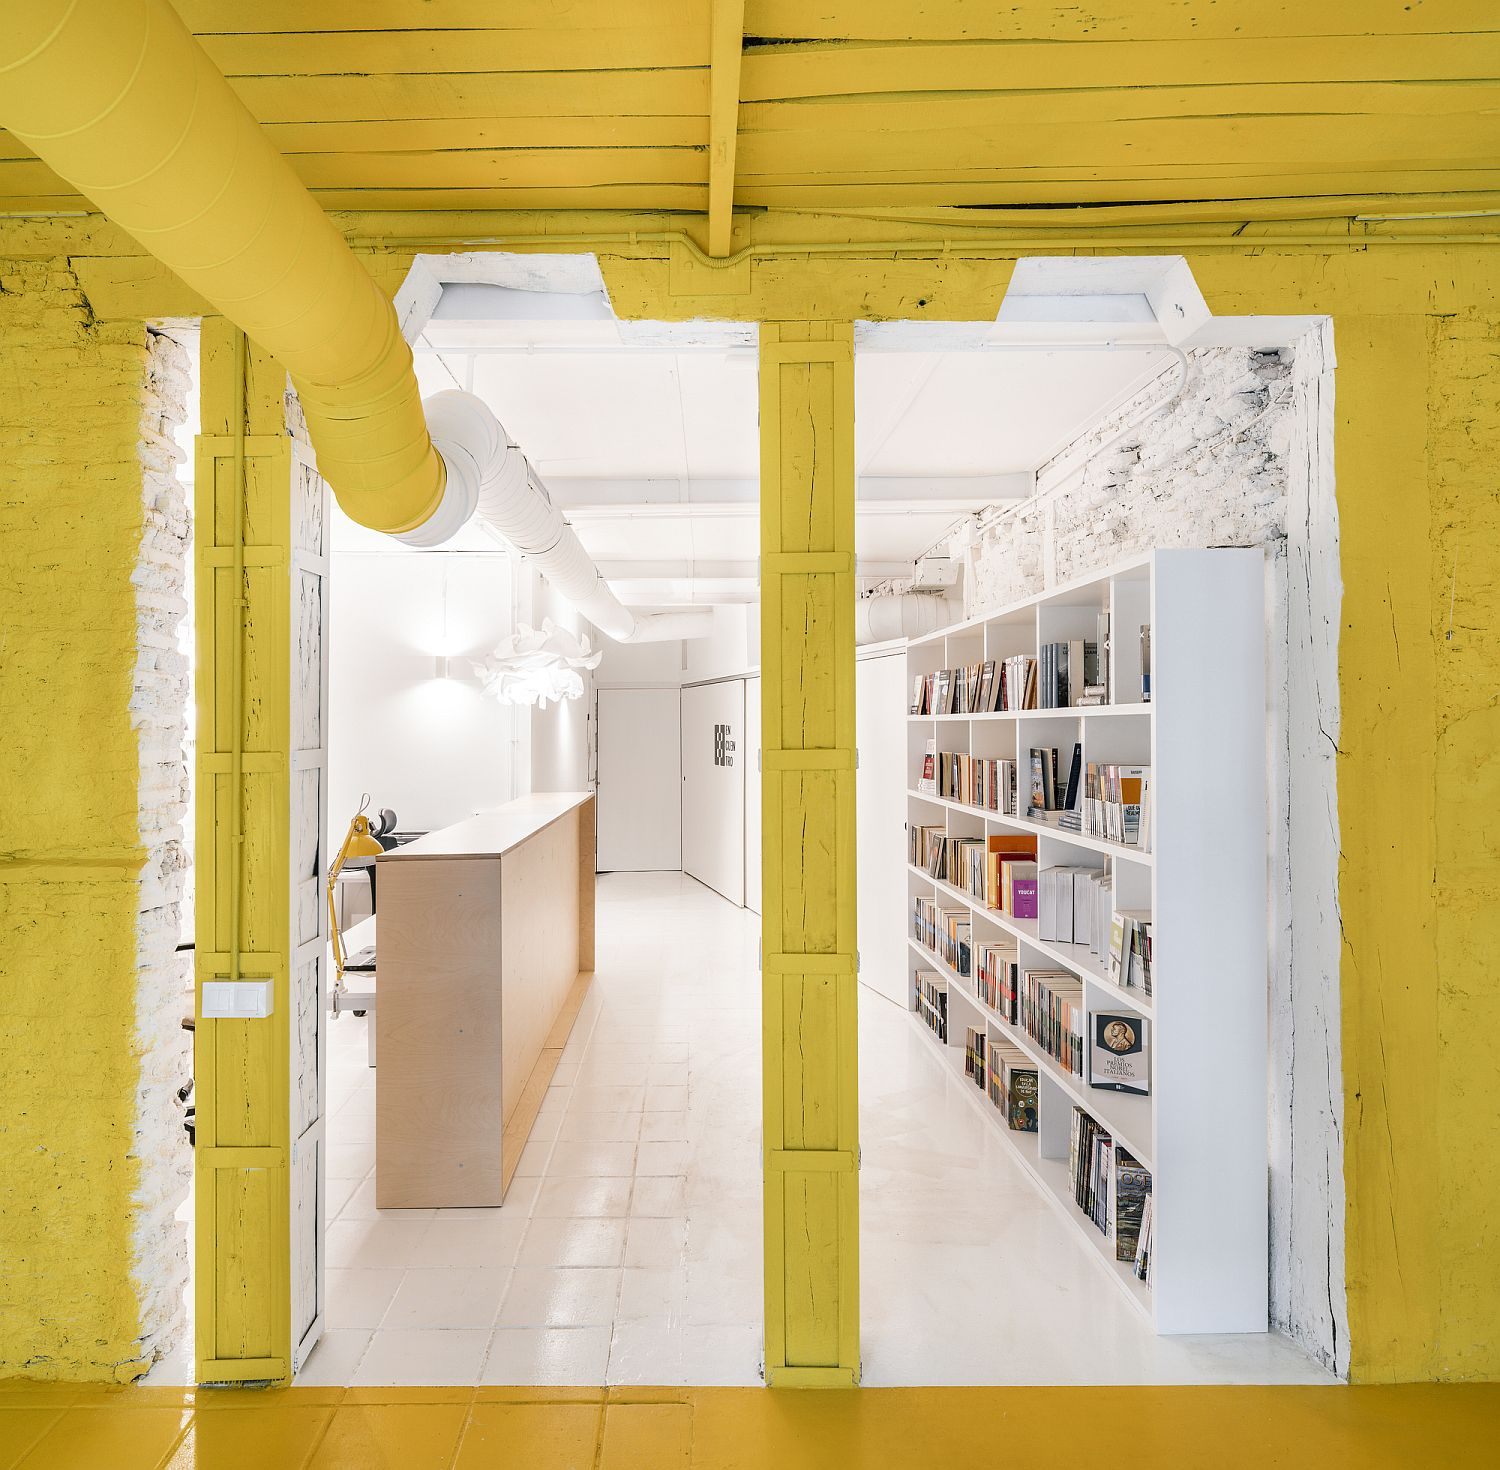 amazing use of yellow for office interior meeting space in madrid - Amazing Use of Yellow for Office Interior: Meeting Space in Madrid